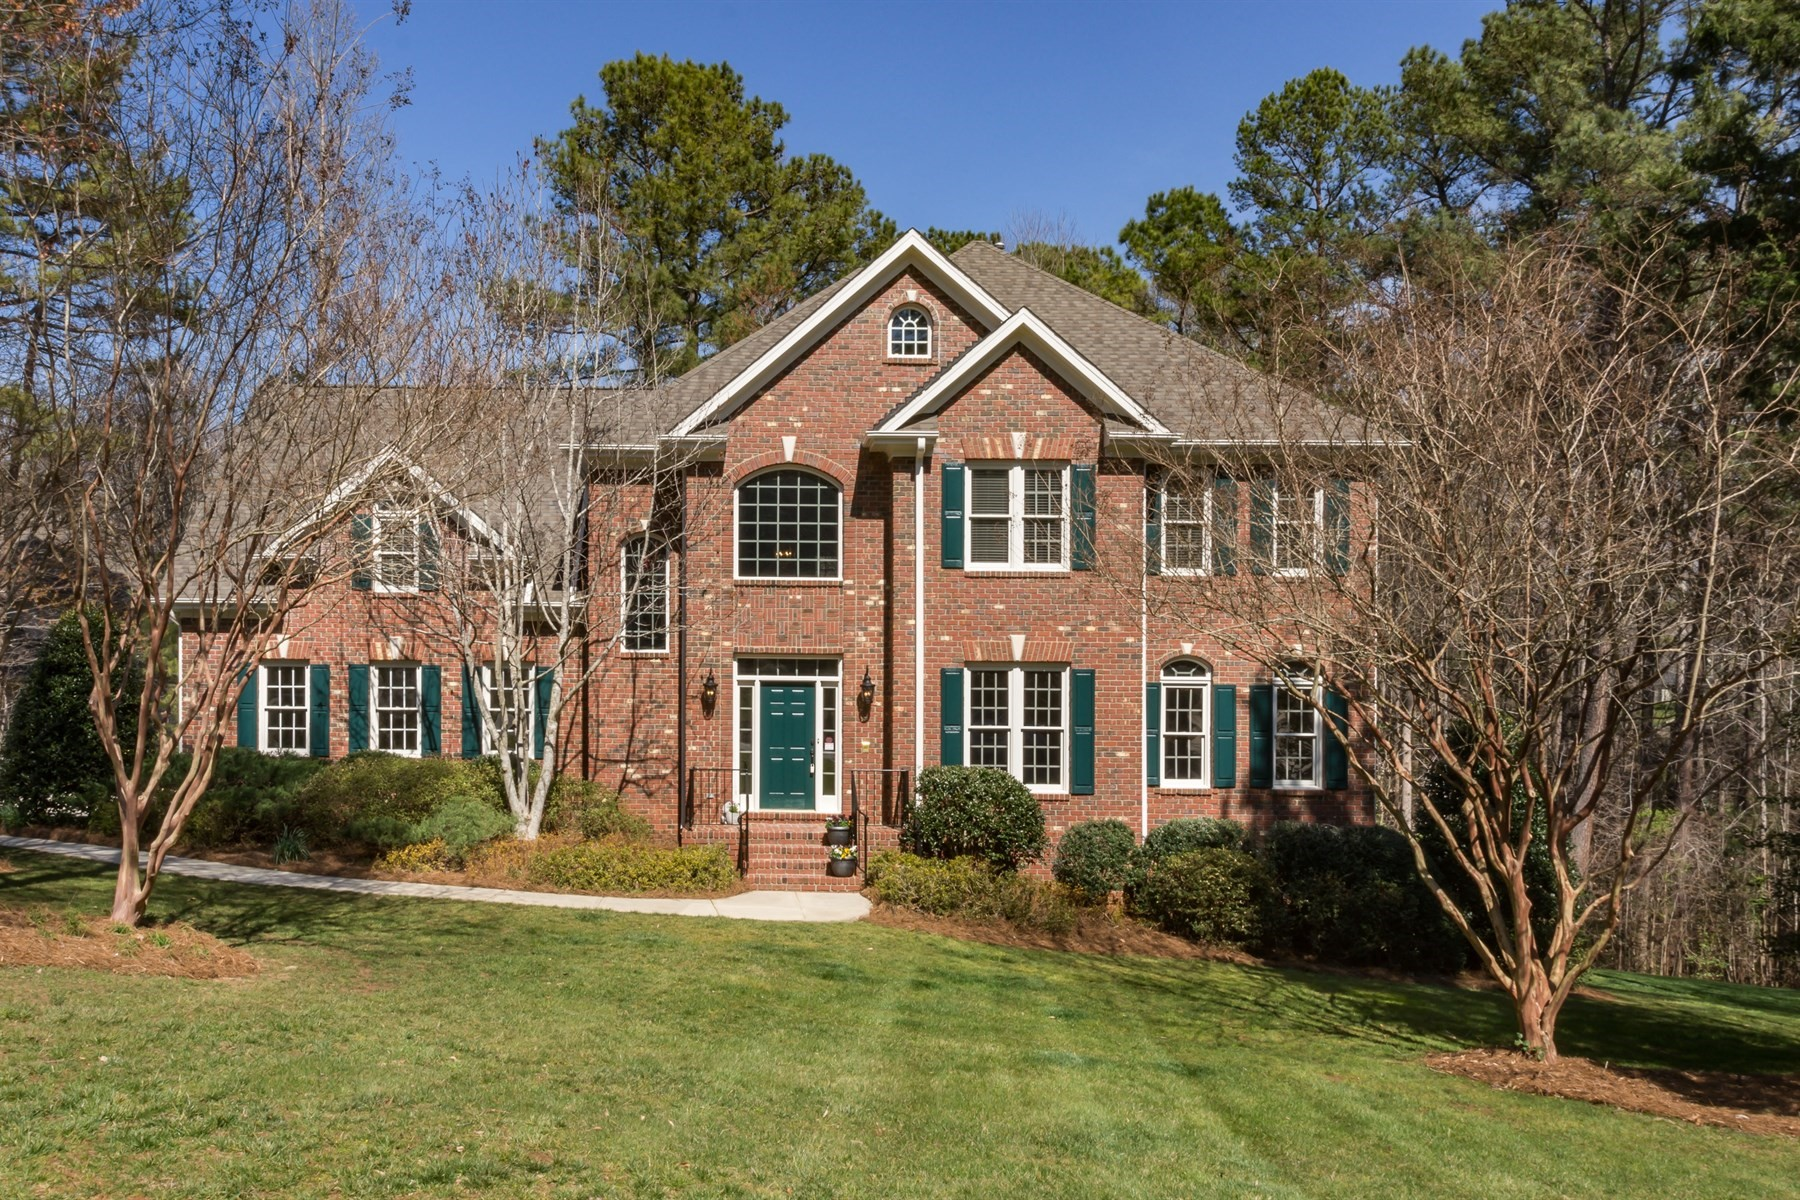 Single Family Home for Sale at 1312 Kinsdale Drive Raleigh, North Carolina, 27615 United StatesIn/Around: Chapel Hill, Cary, Durham